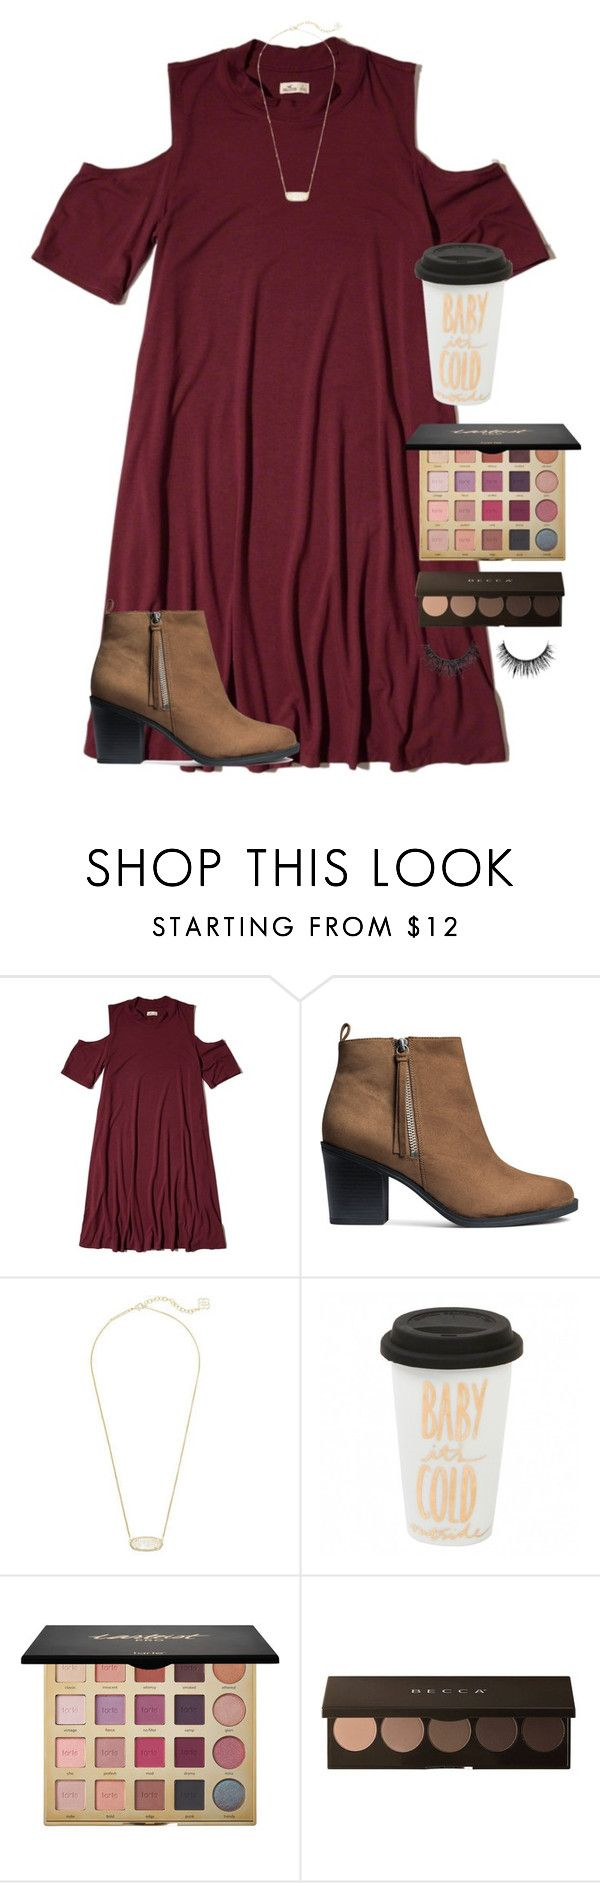 """""""Sunday best"""" by emmagracejoness ❤ liked on Polyvore featuring Hollister Co., H&M, Kendra Scott and tarte"""